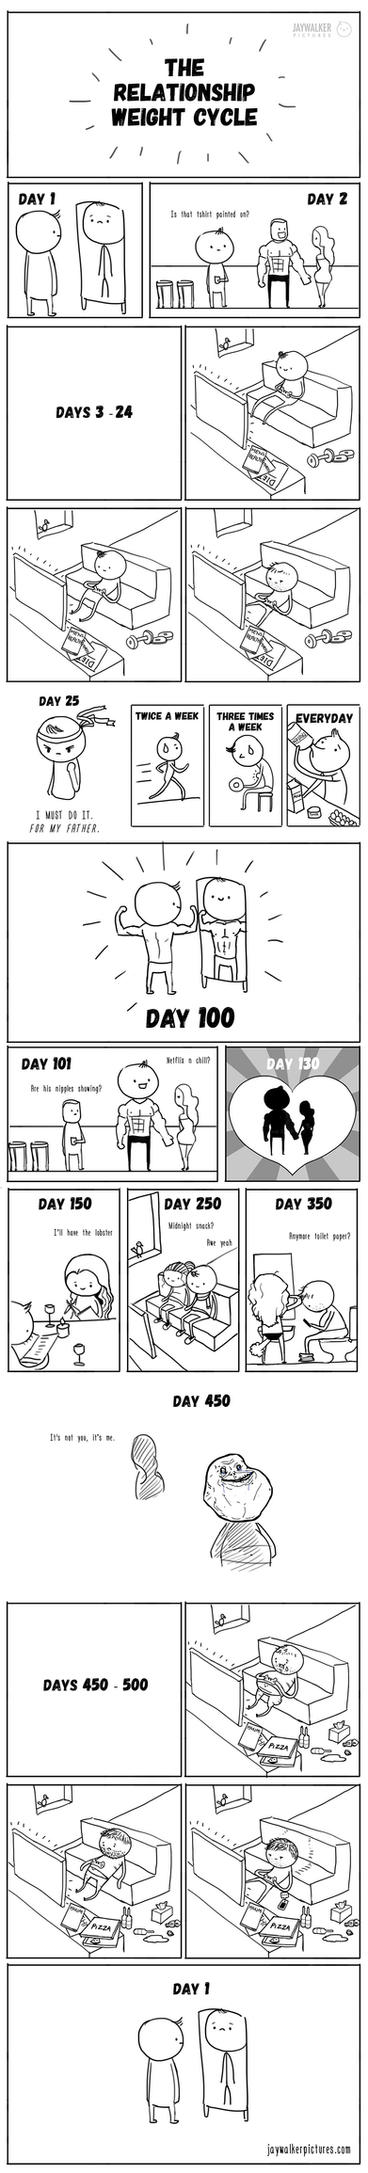 The Relationship Weight Cycle by jayngs